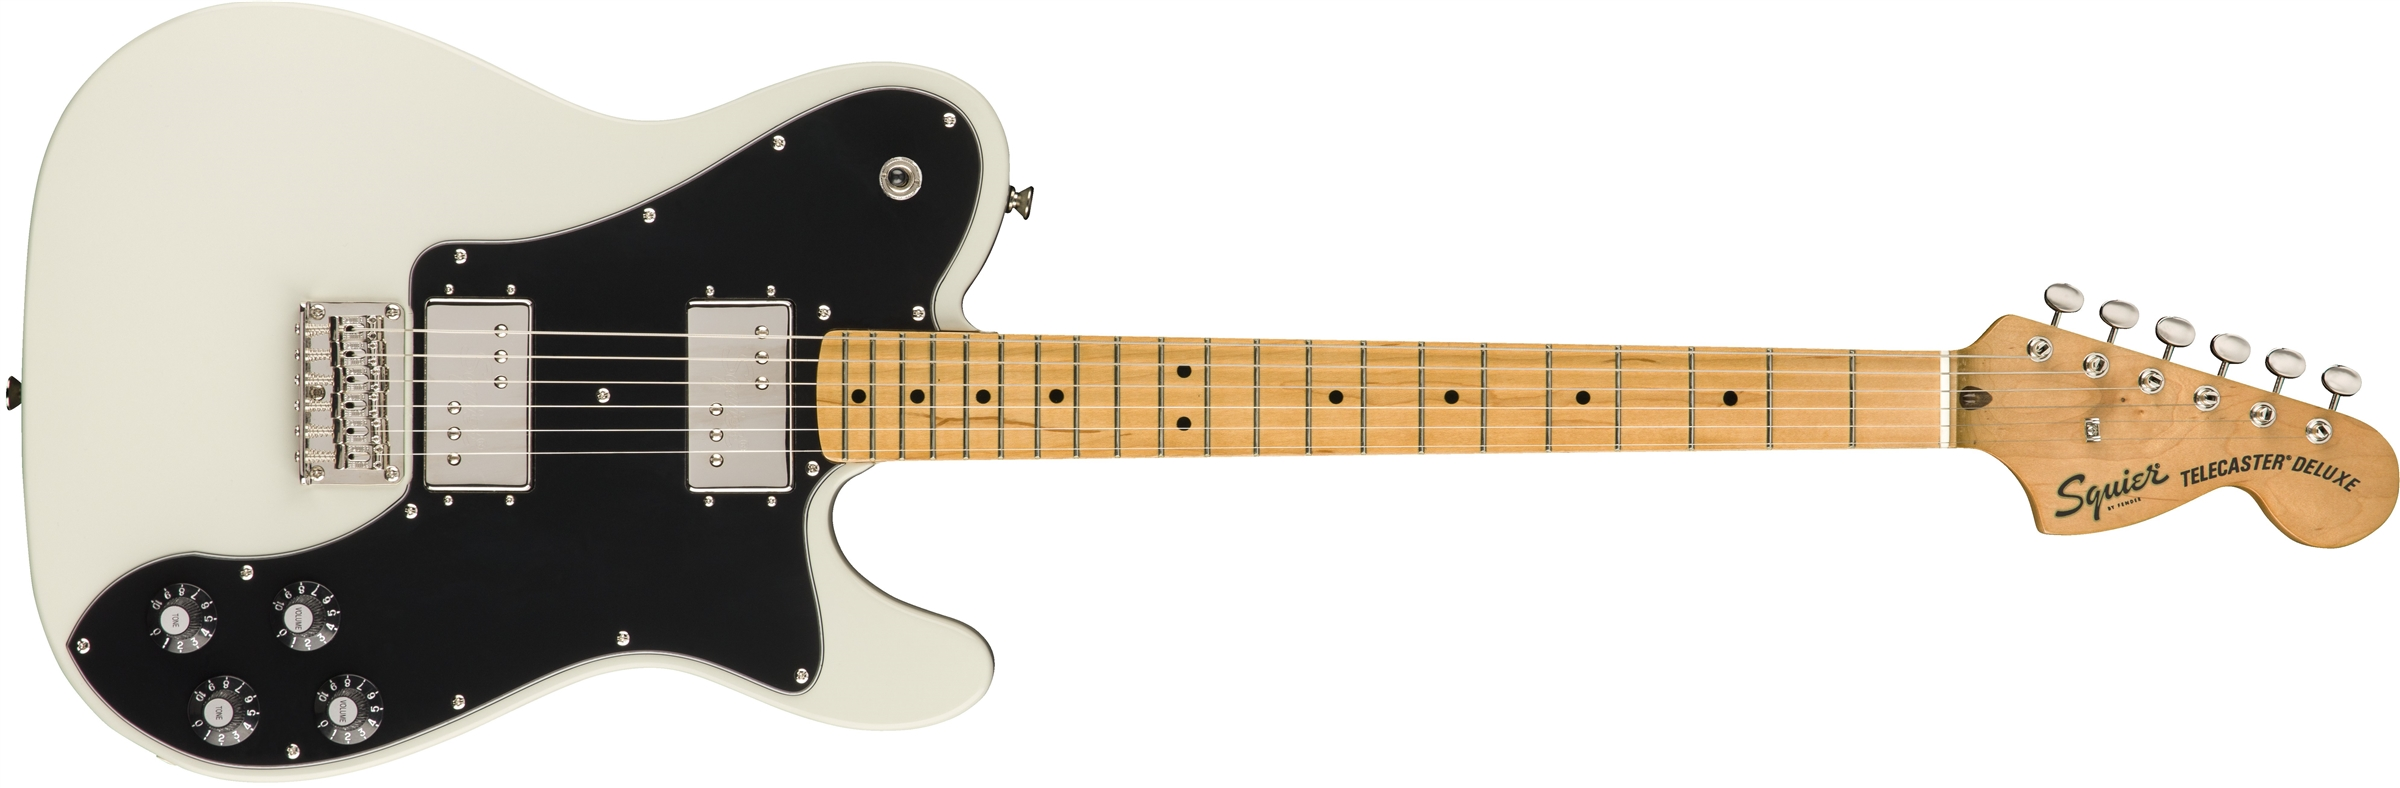 SQUIER Classic Vibe Telecaster Deluxe MN Olympic White  0374060505